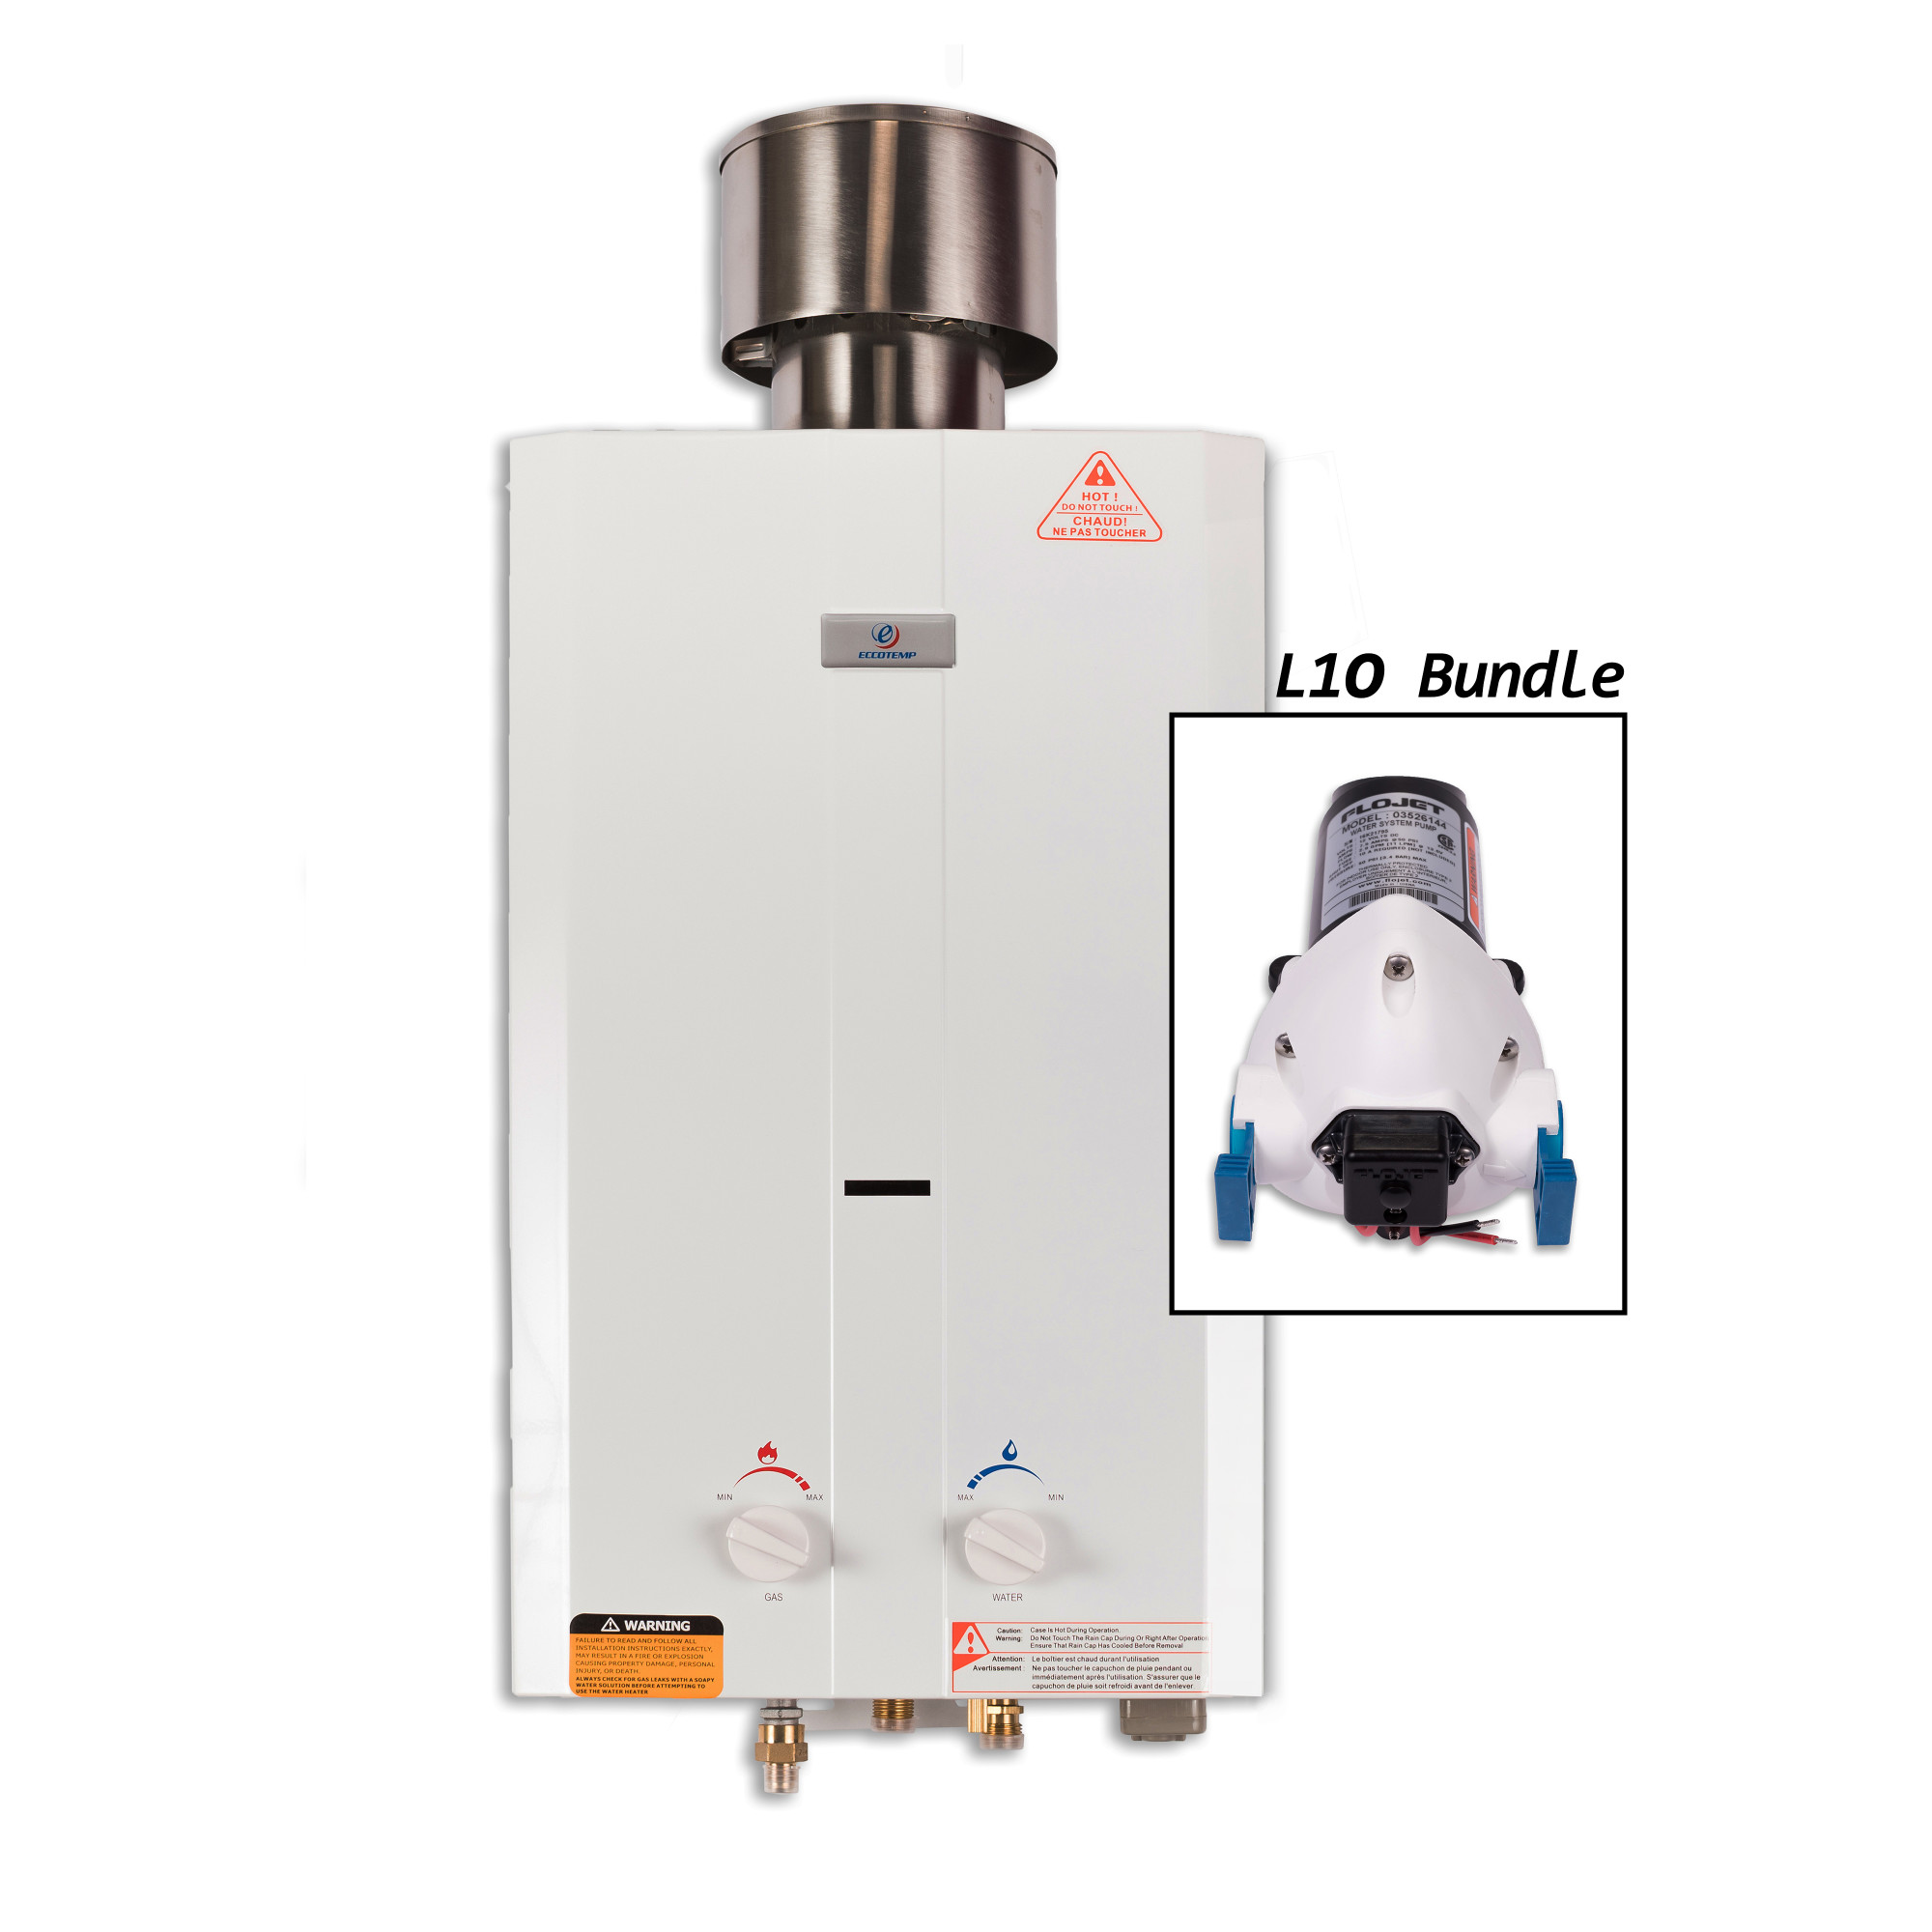 Eccotemp Systems L10-P L10 Portable Outdoor Tankless Water Heater with EccoFlo Pump and Strainer